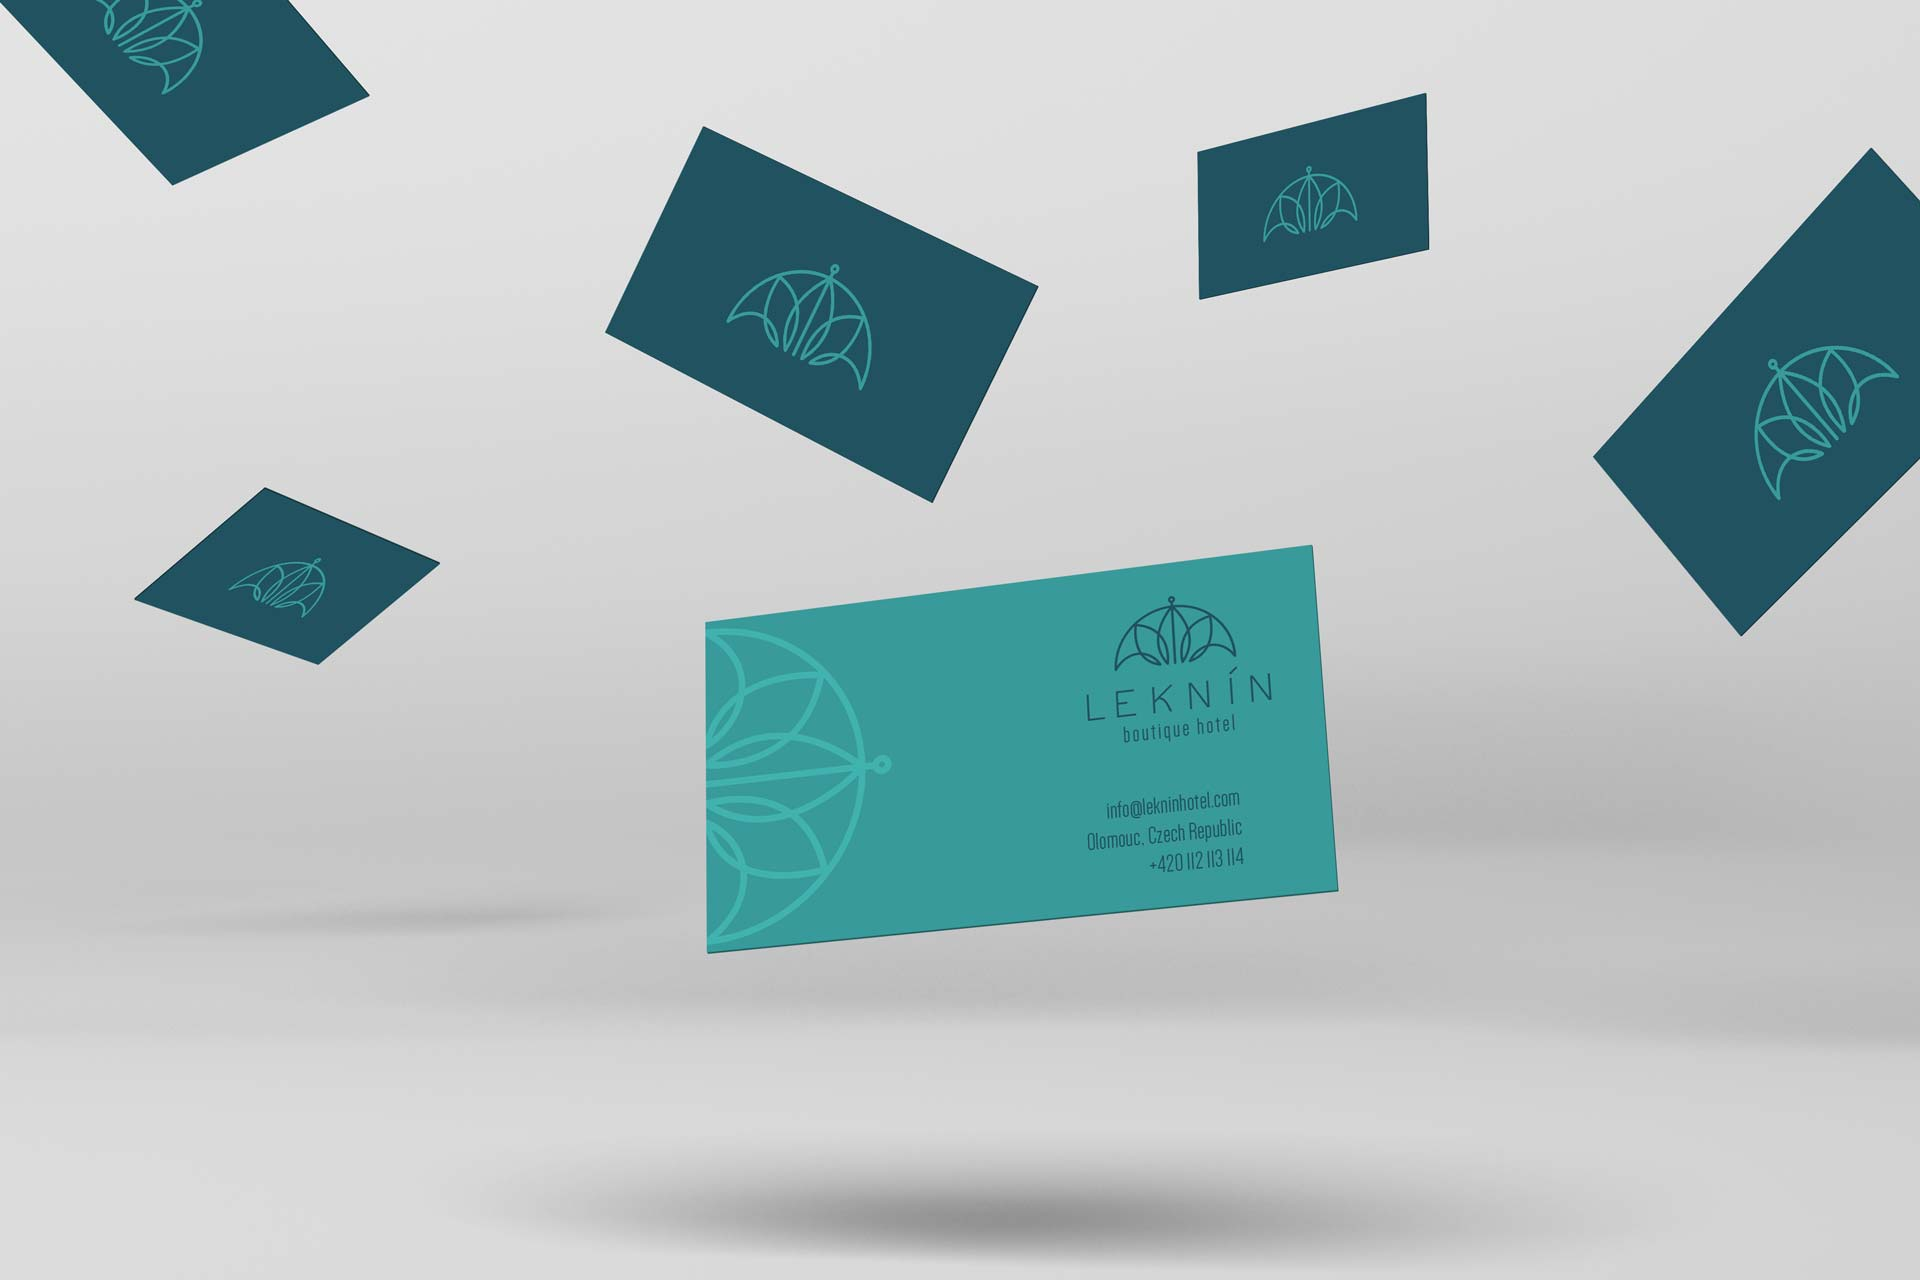 Image - Business card – an old fashioned tool or still a trendy must?